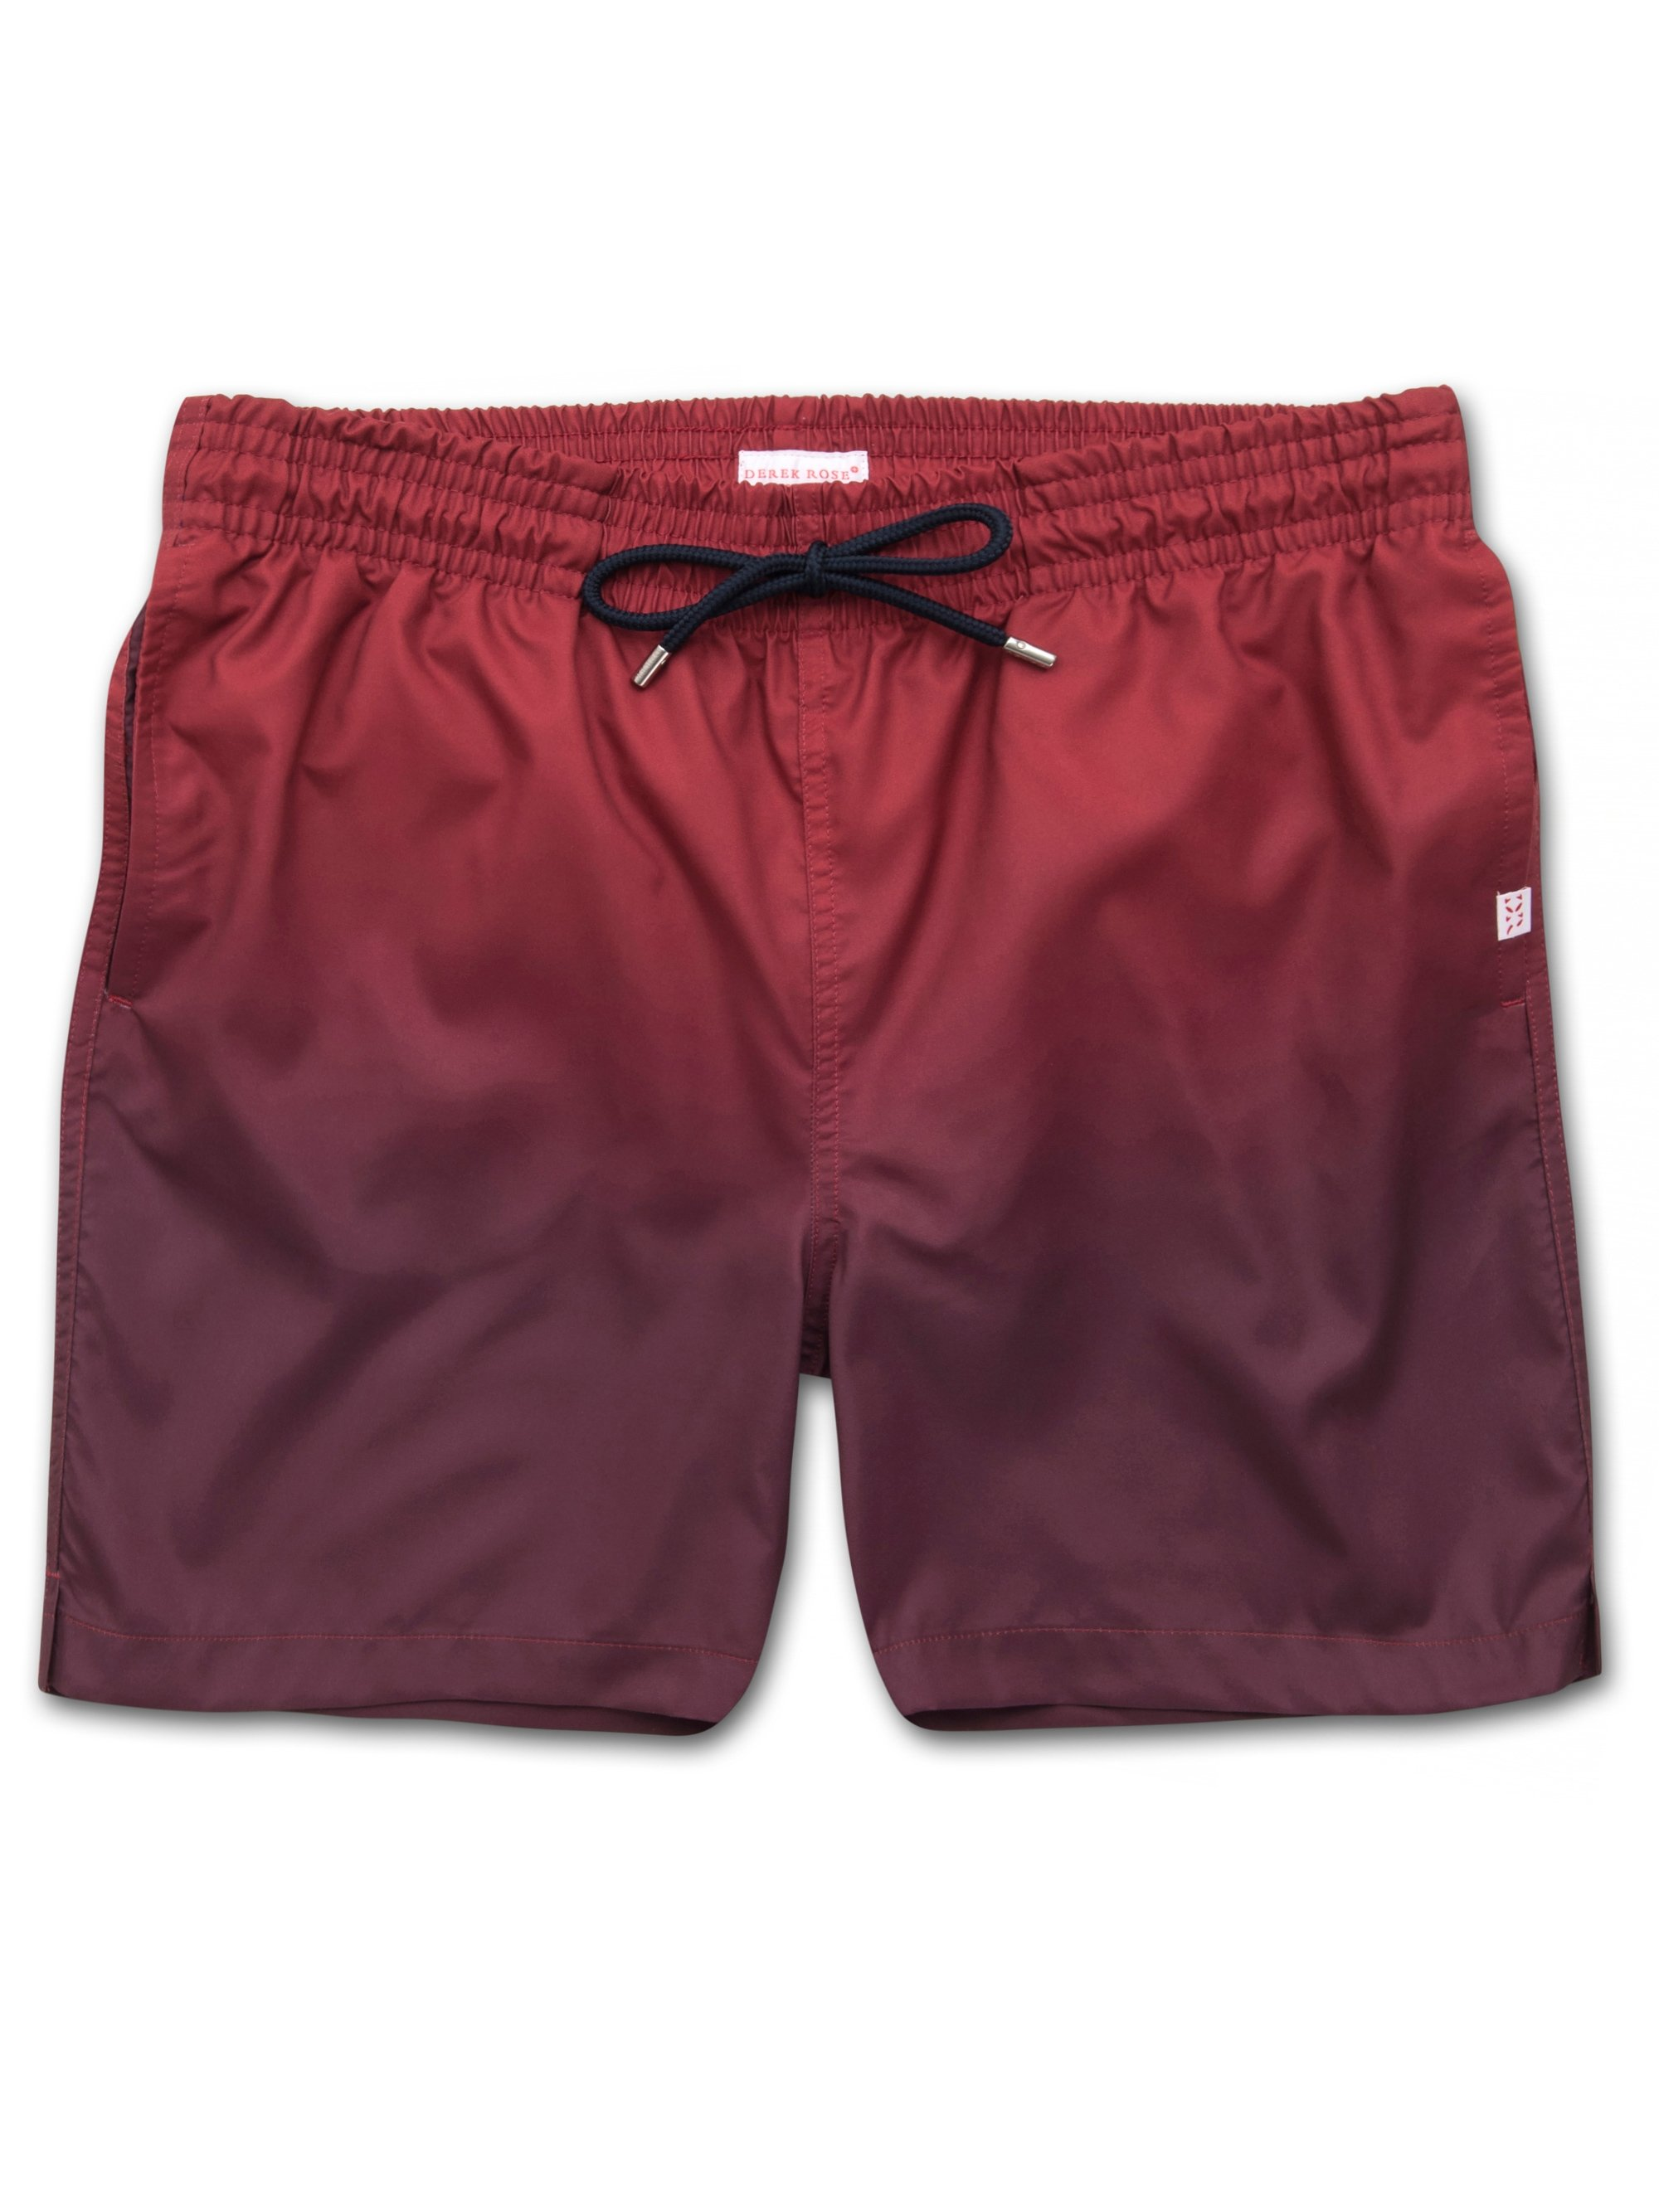 Men's Classic Fit Swim Shorts Maui 26 Red